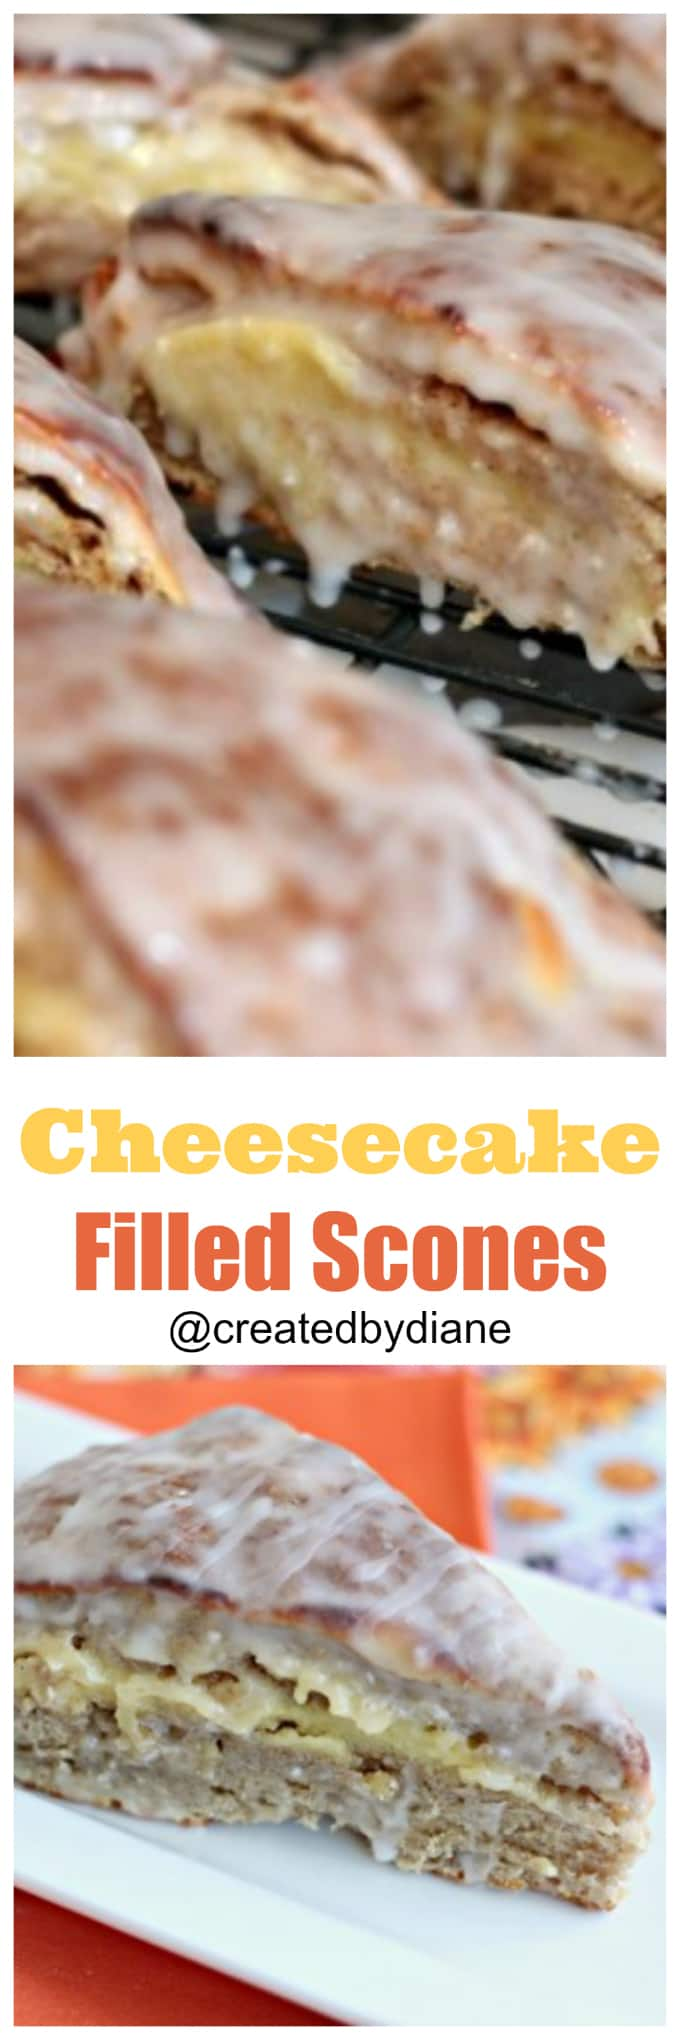 cheesecake filled scones @createdbydiane